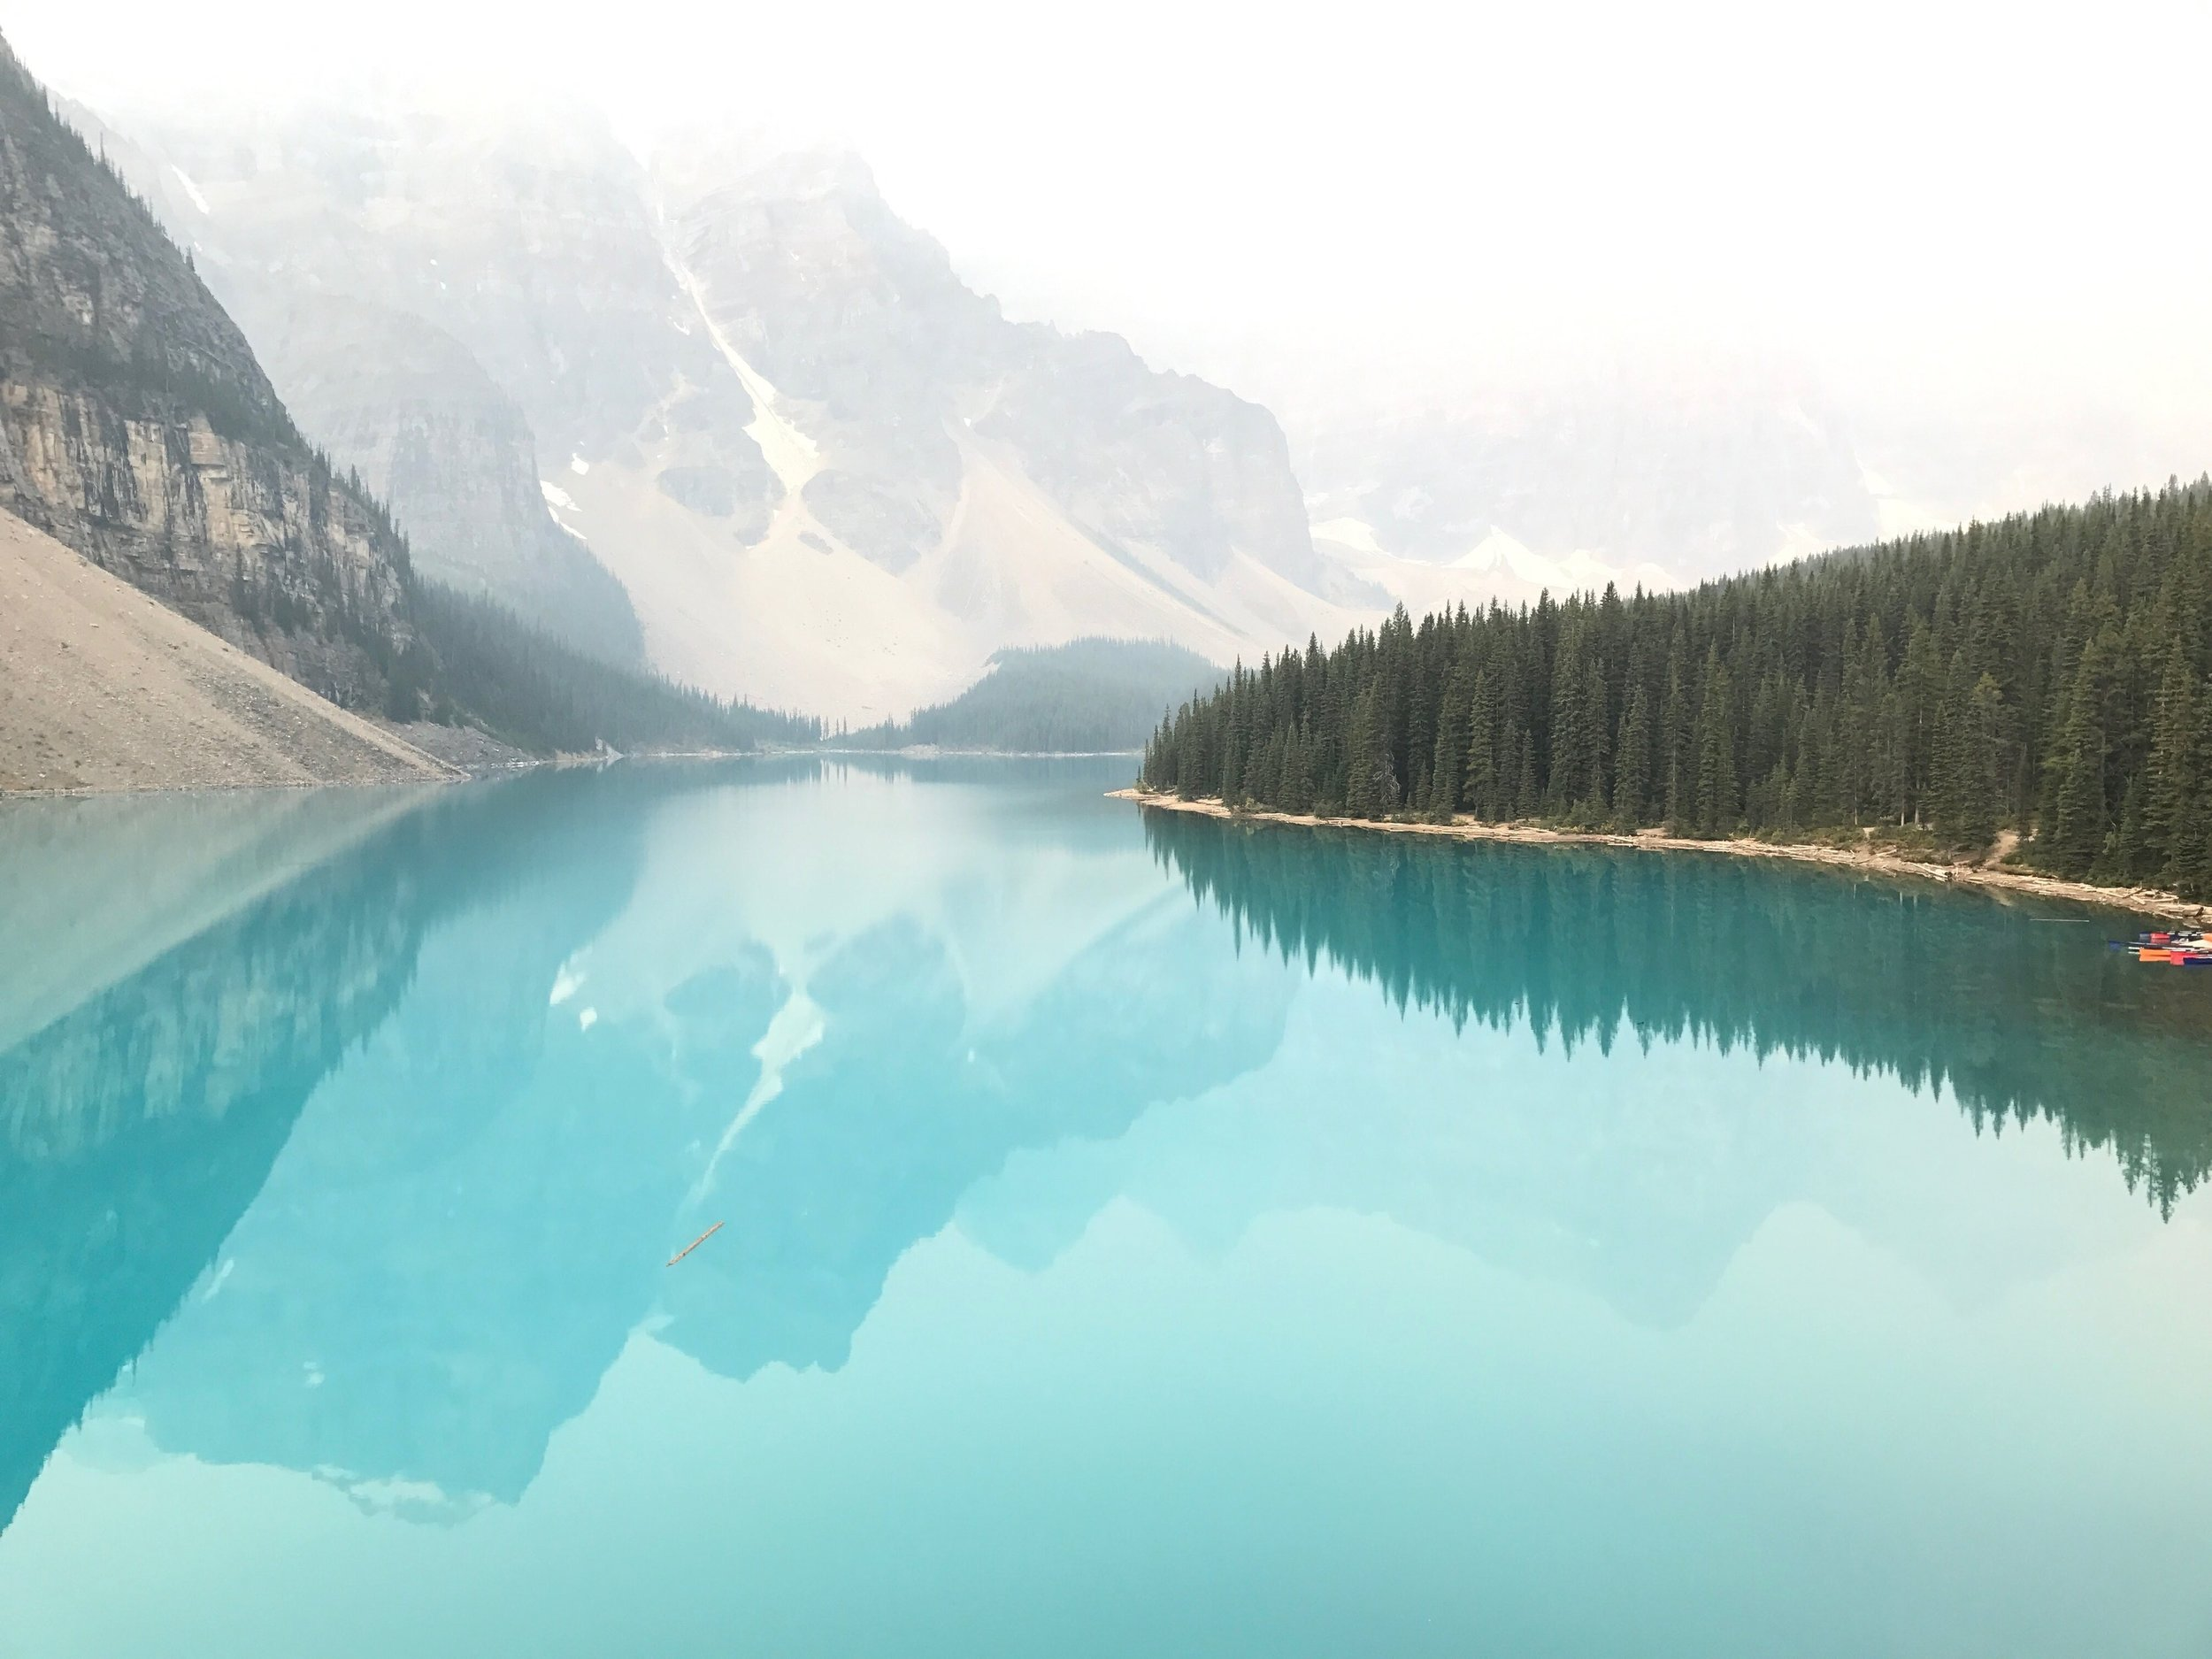 Lake Morraine at Sunrise Banff National Park Canada Tour Guide Itinerary Charisma Shah